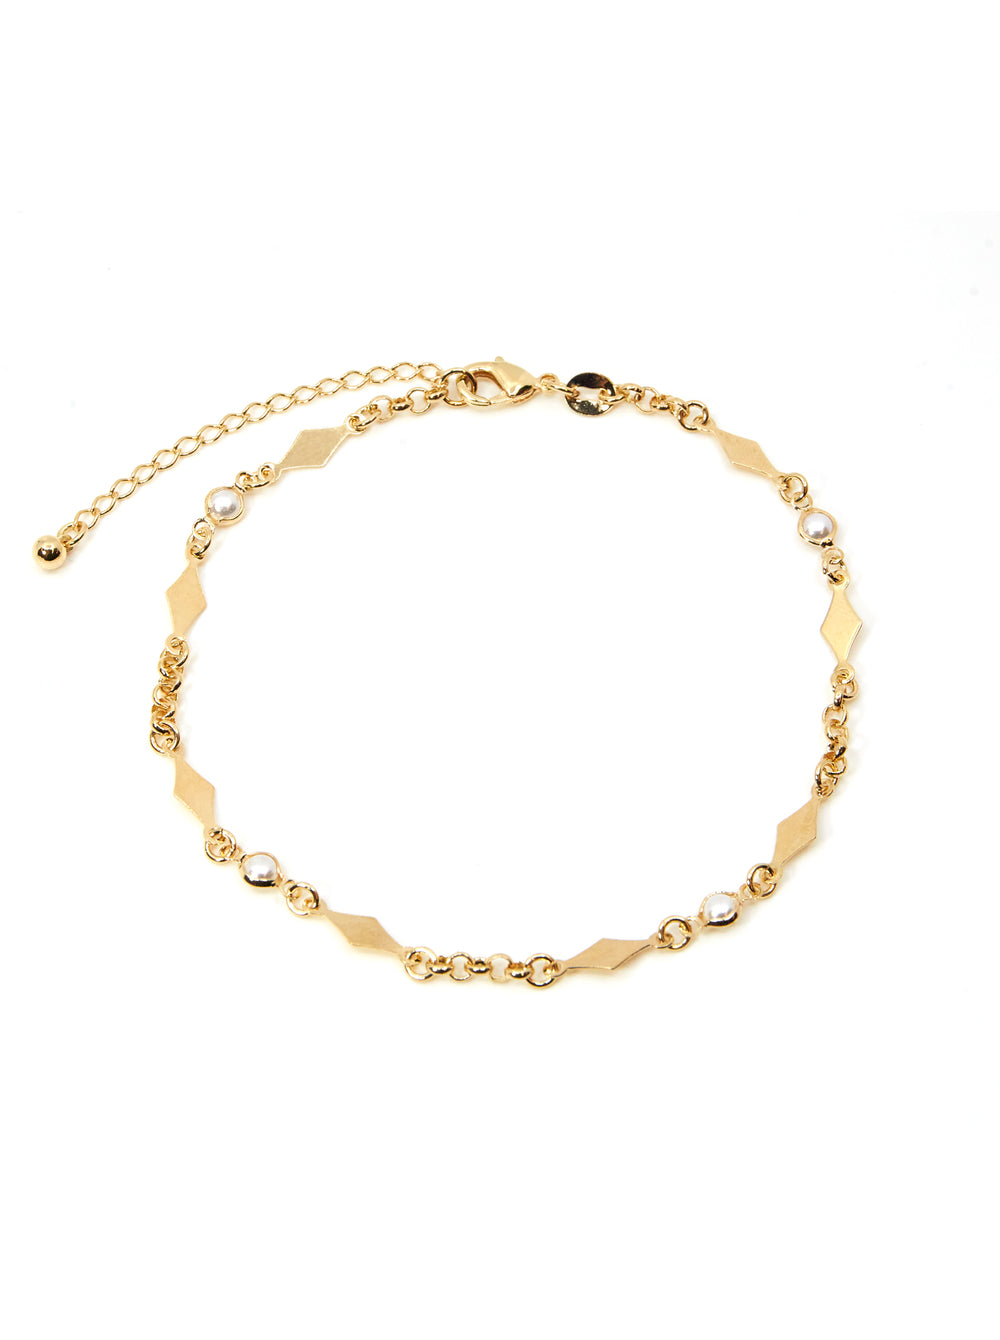 THE PEARL RHOMBUS ANKLET